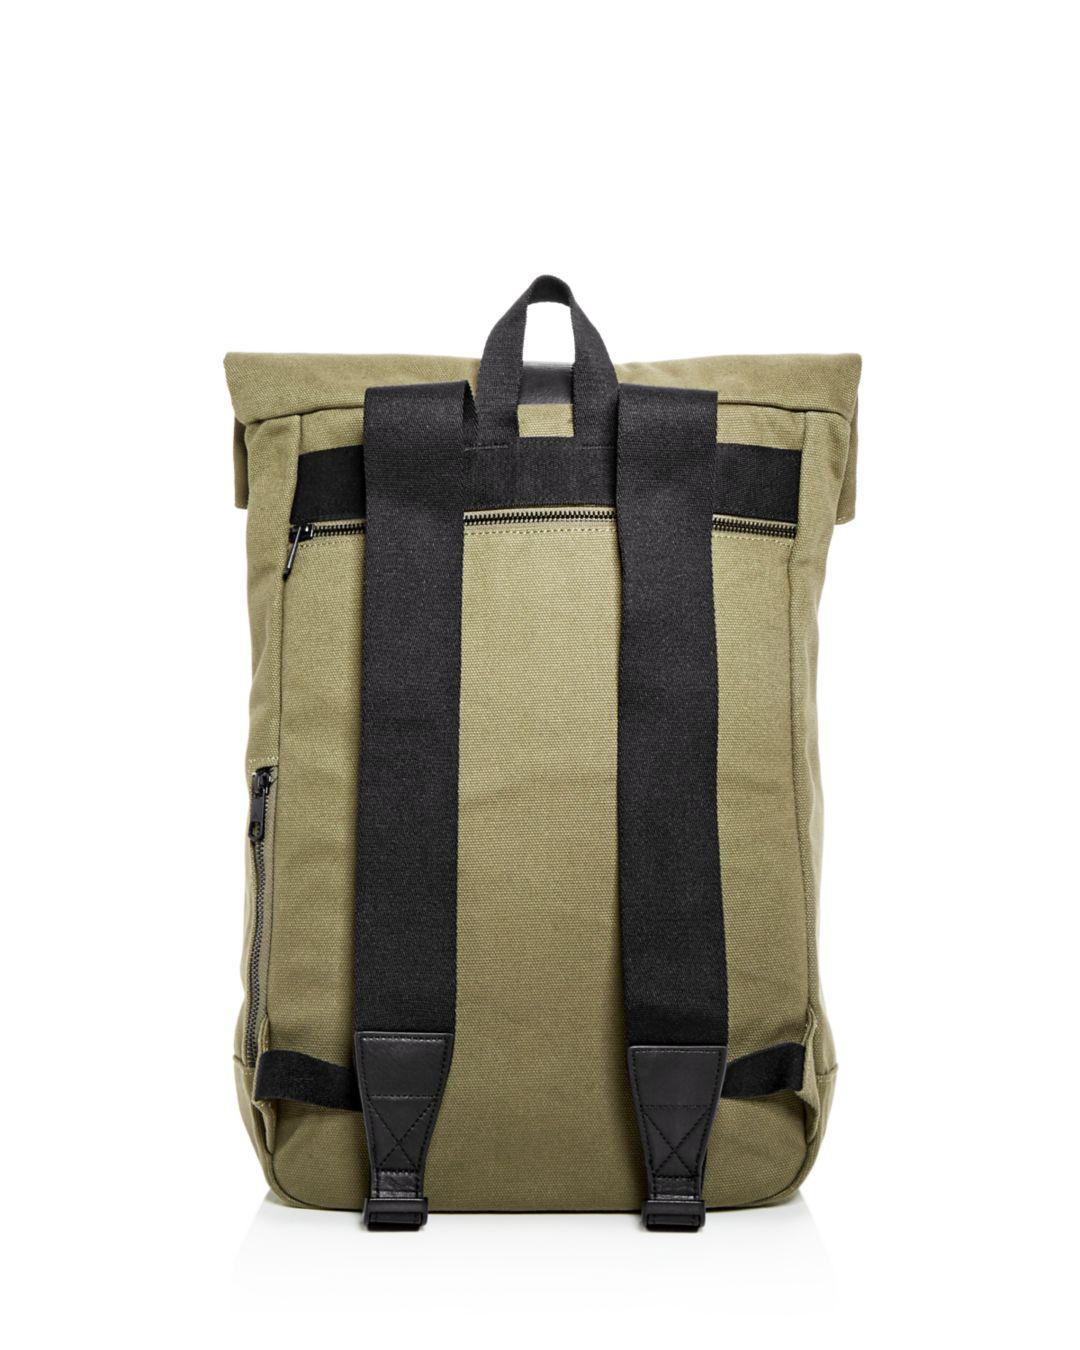 4d393d141 State - Green Kensington Colby Canvas Backpack for Men - Lyst. View  fullscreen